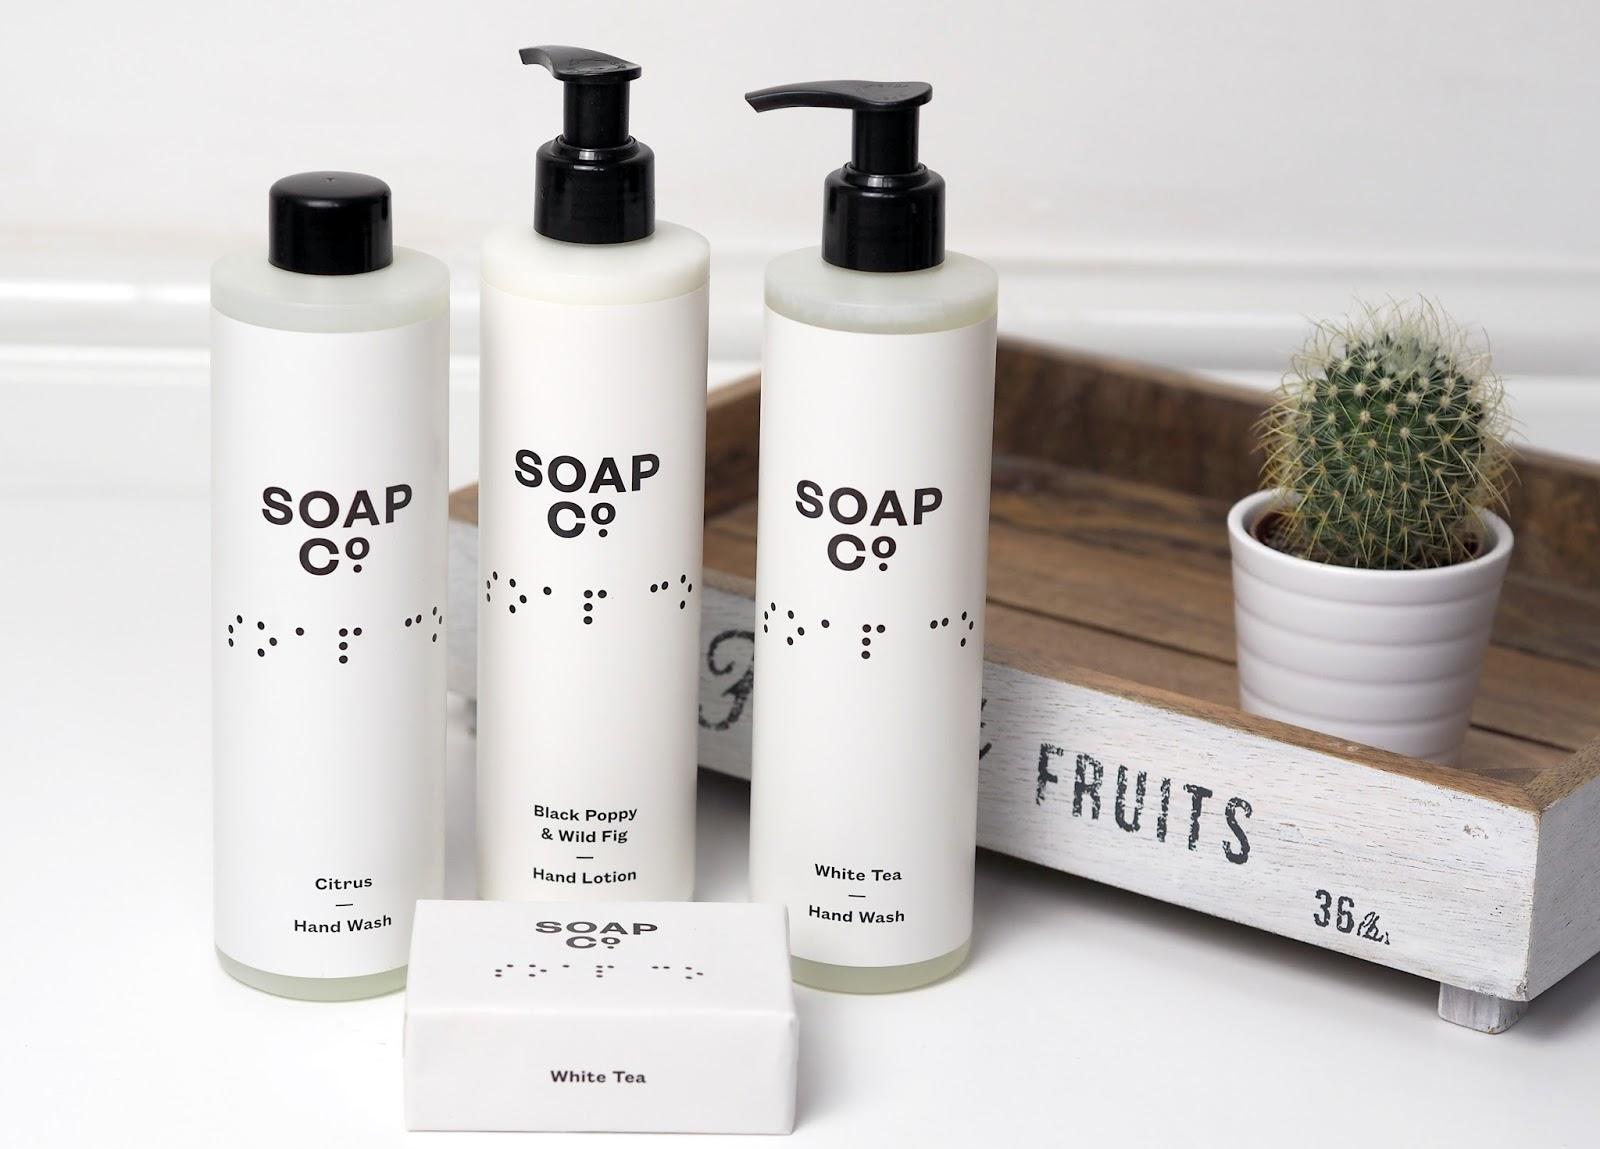 Luxury ethical soap which not only is good but does good too